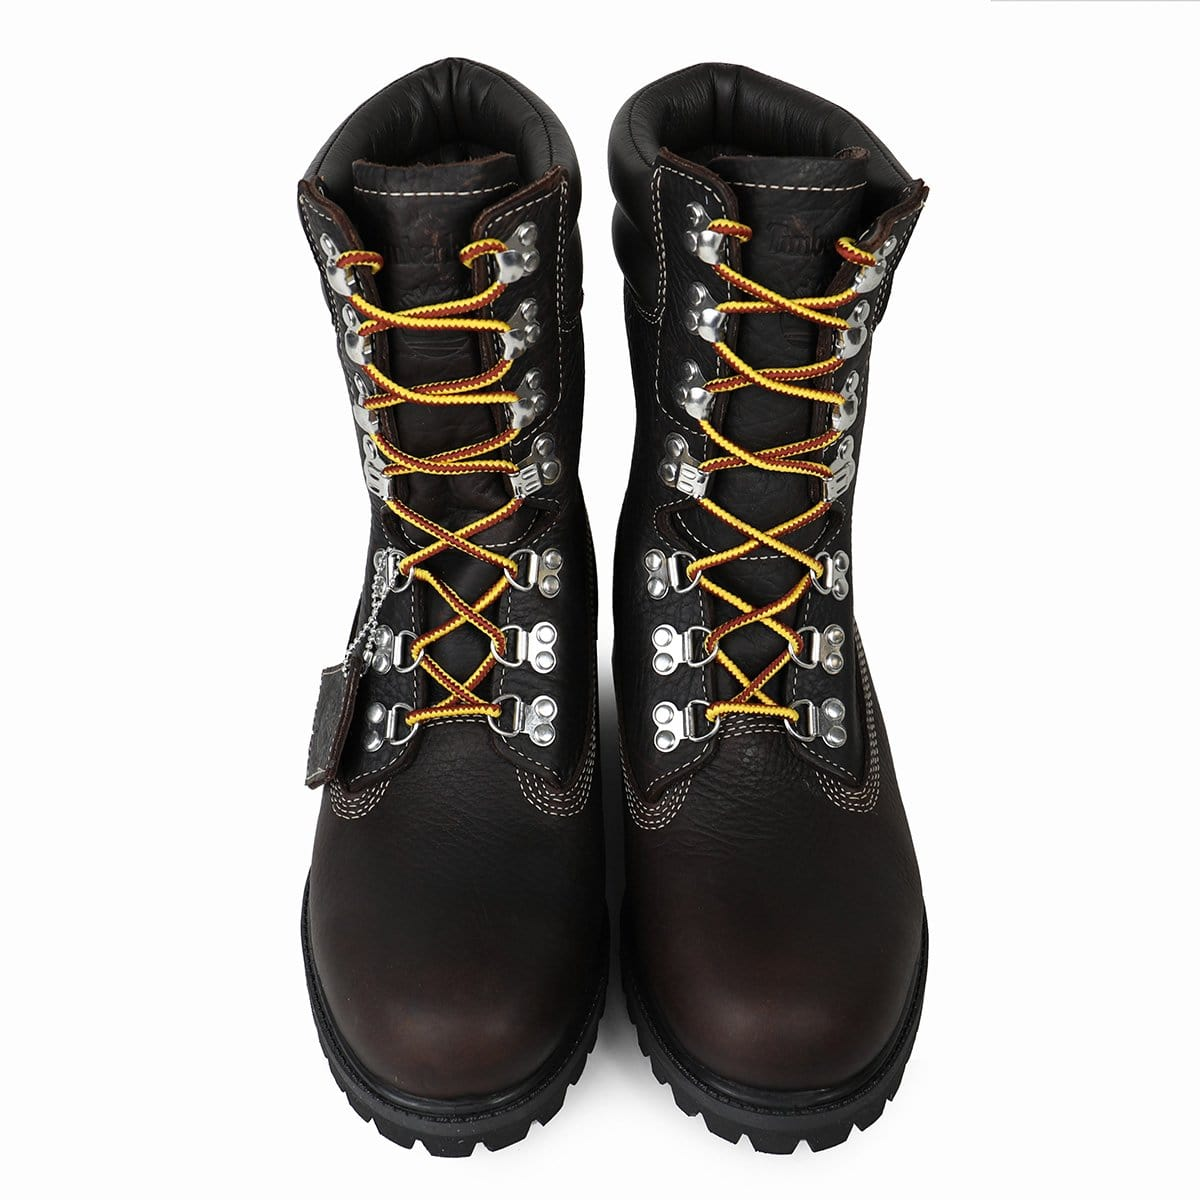 "RUVilla.com is where to buy the Timberland Winter Extreme 9"" Superboot (Hazel Highway)!"